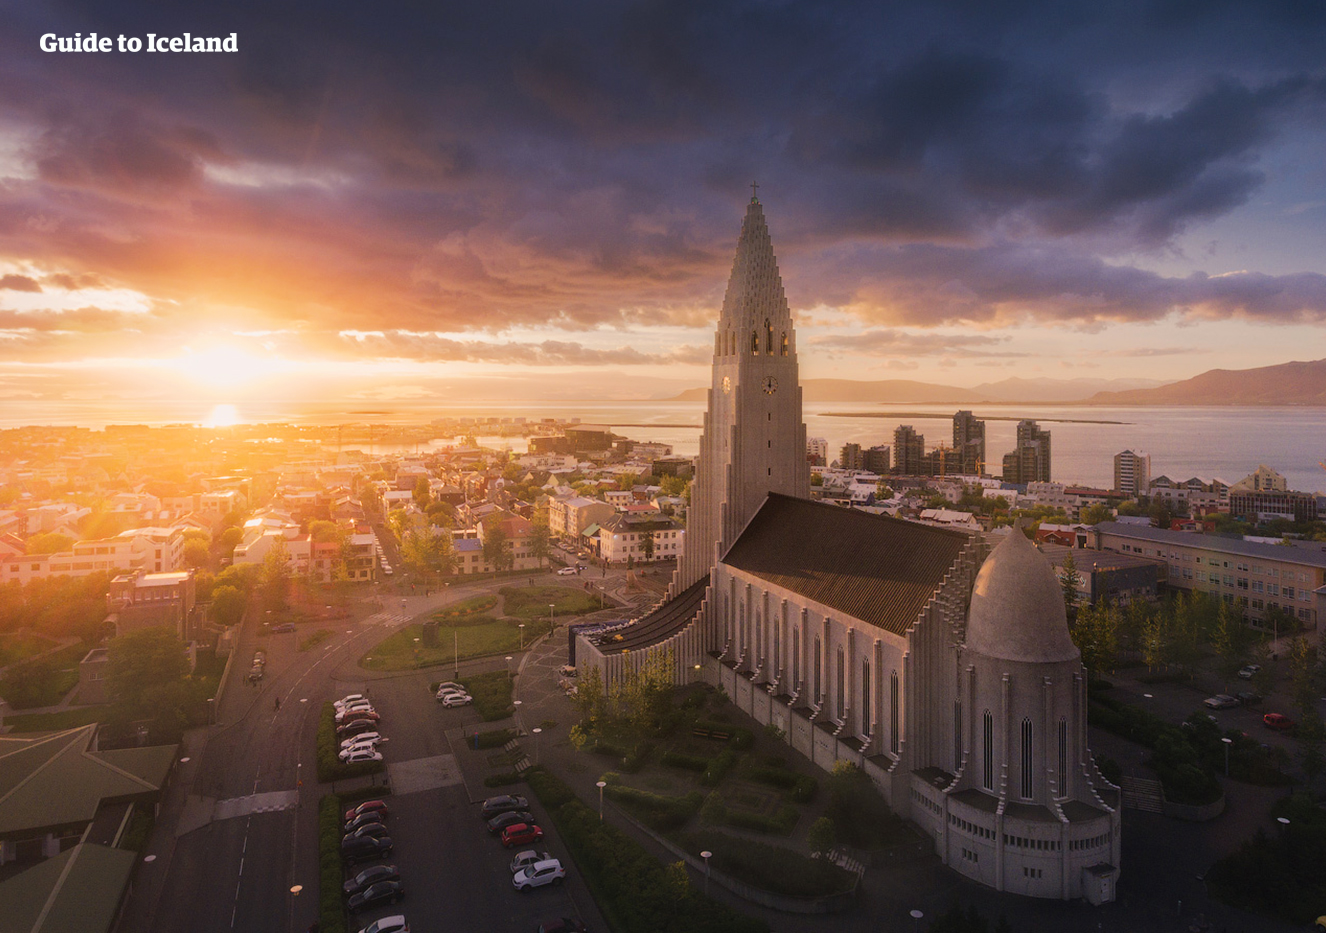 8 Day Summer Tour Package | Best Attractions in Iceland - day 1